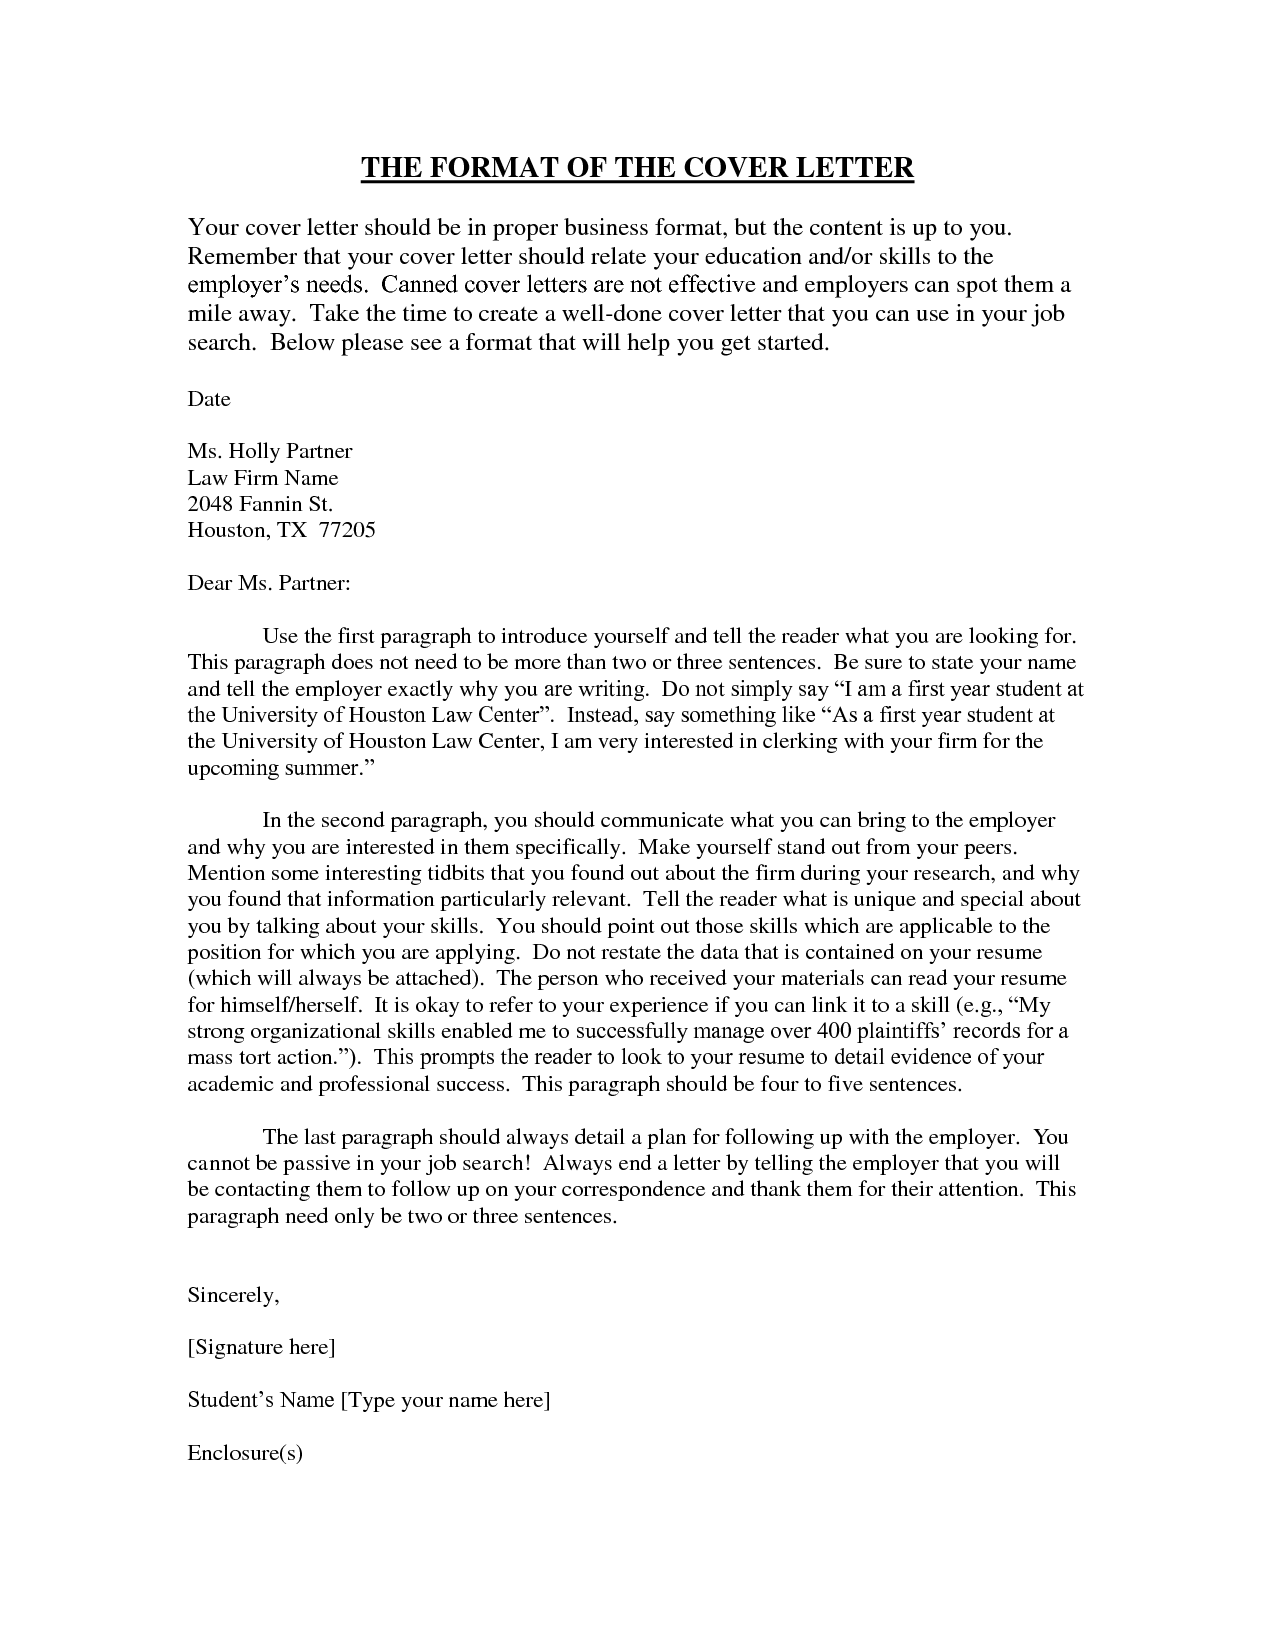 how to do a proper cover letter - proper letter format 2016